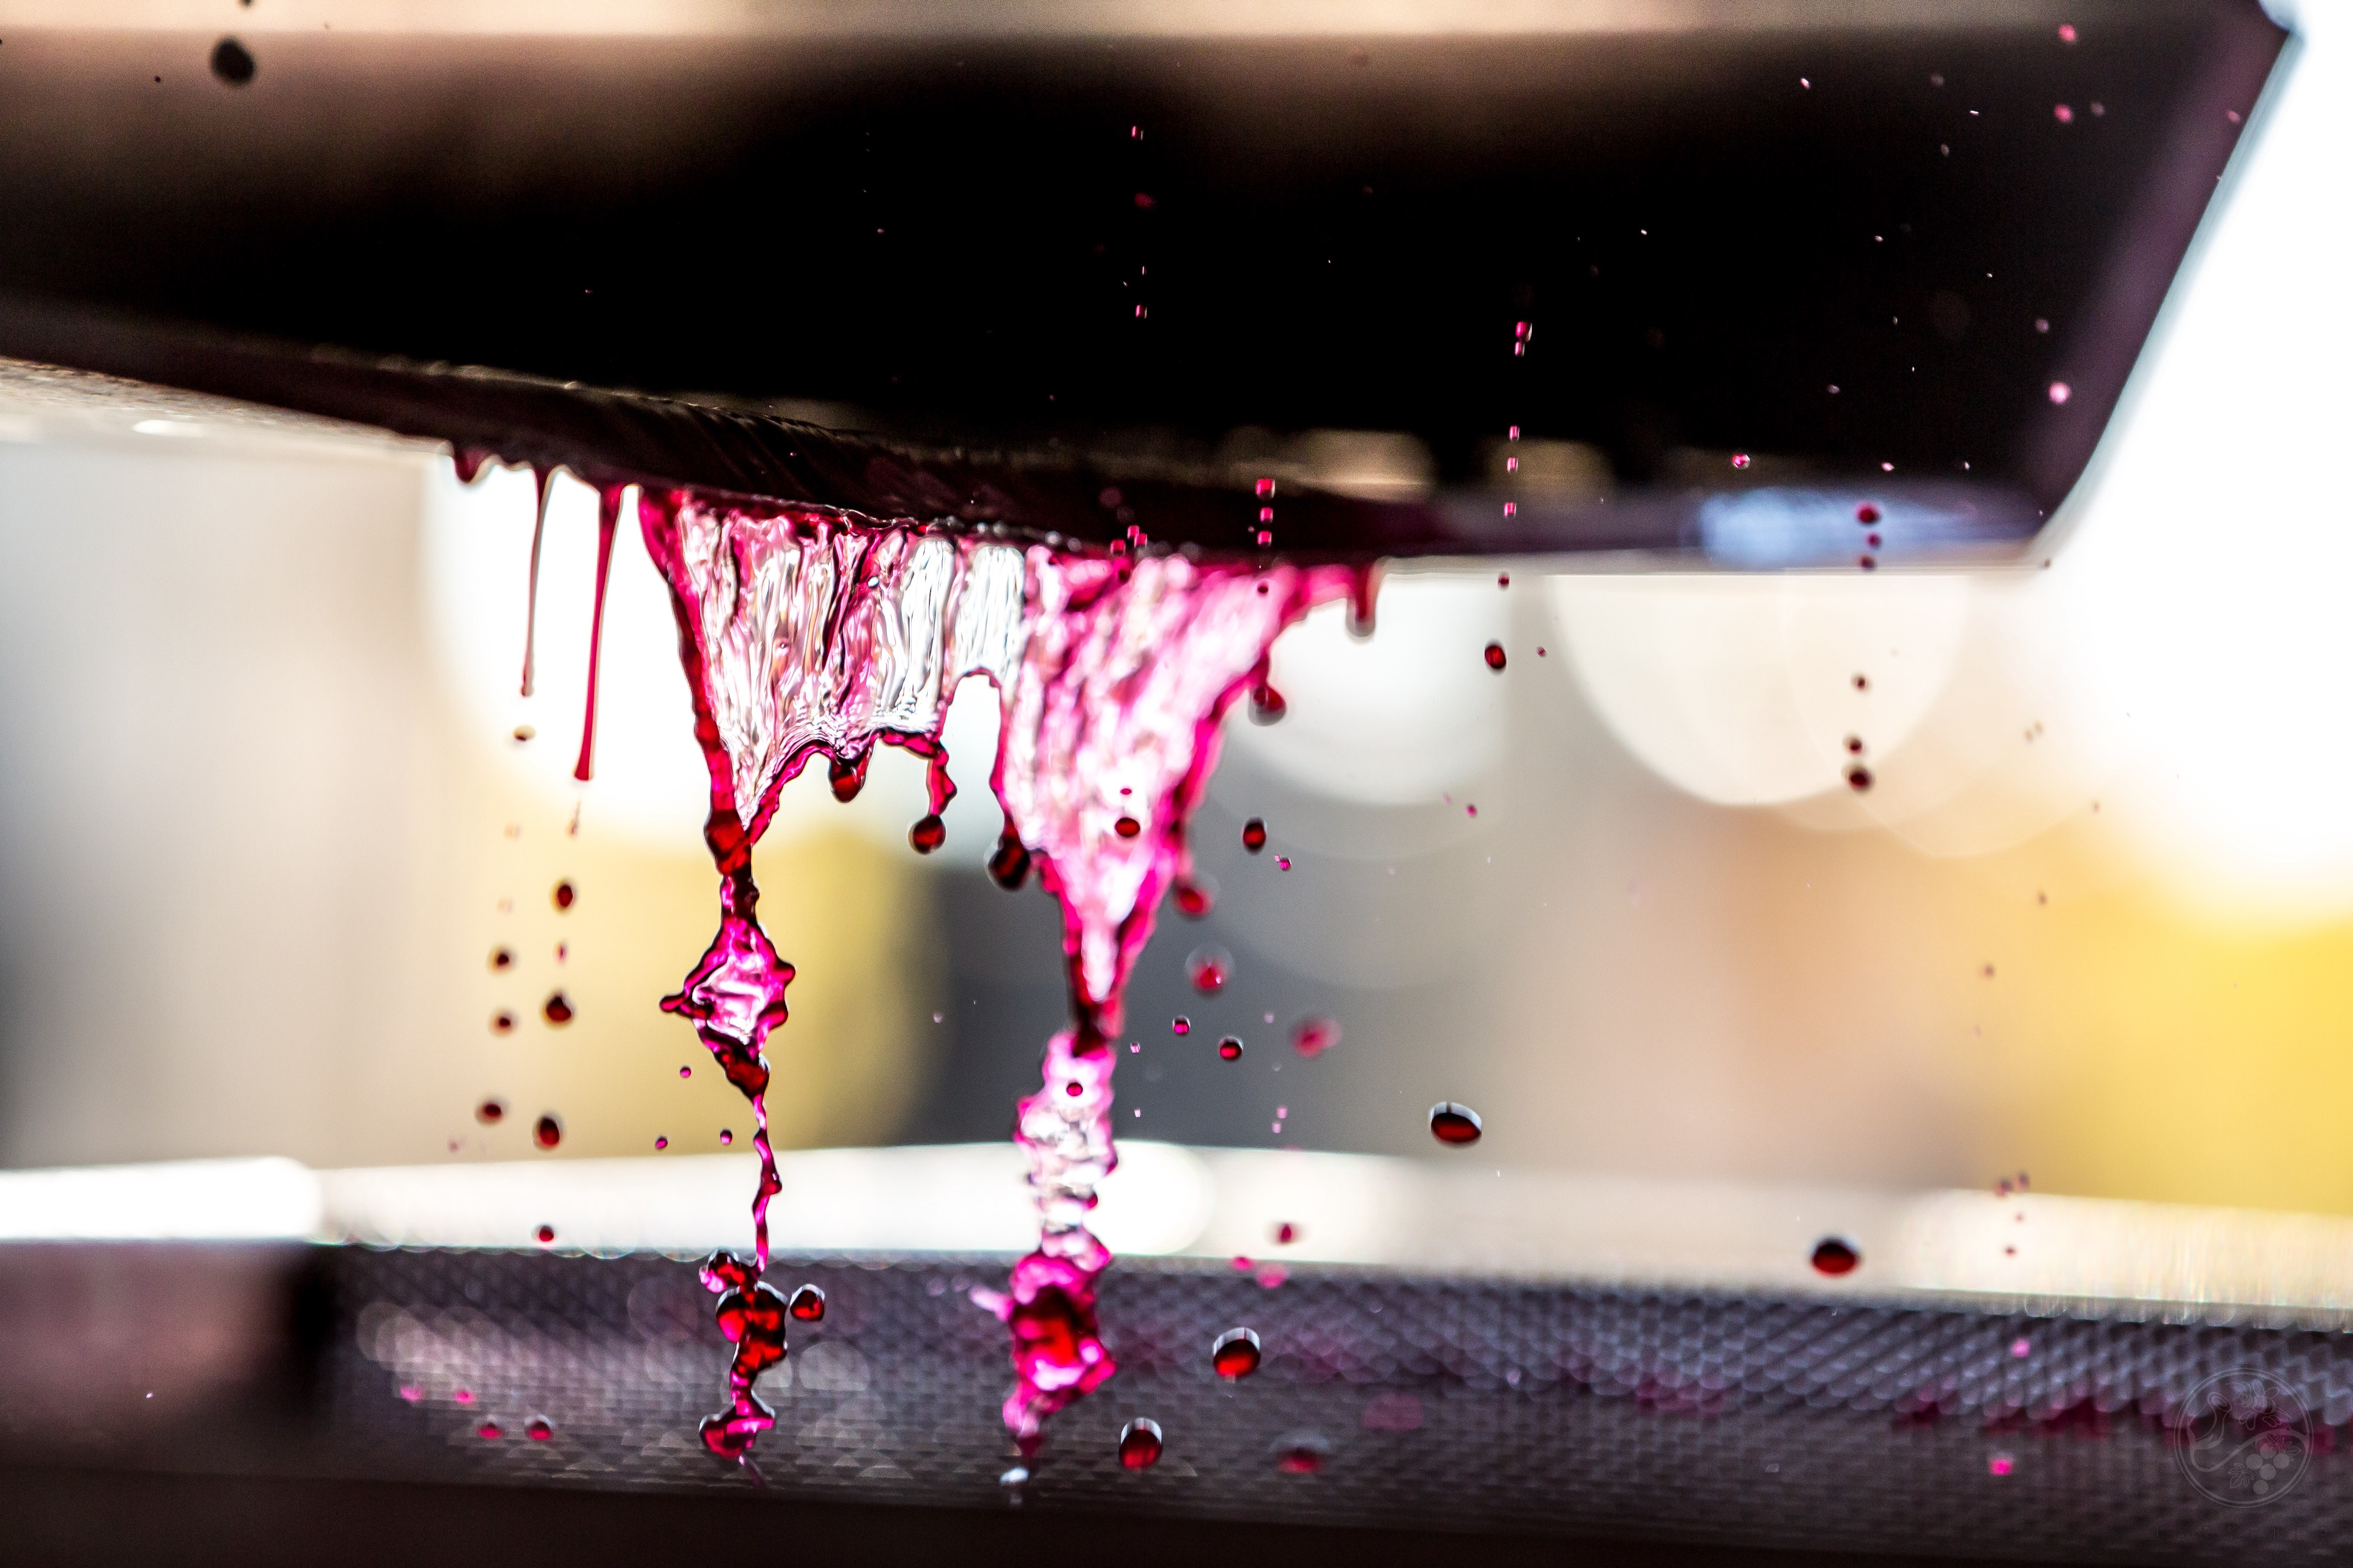 Deep purple juice falls from a container.